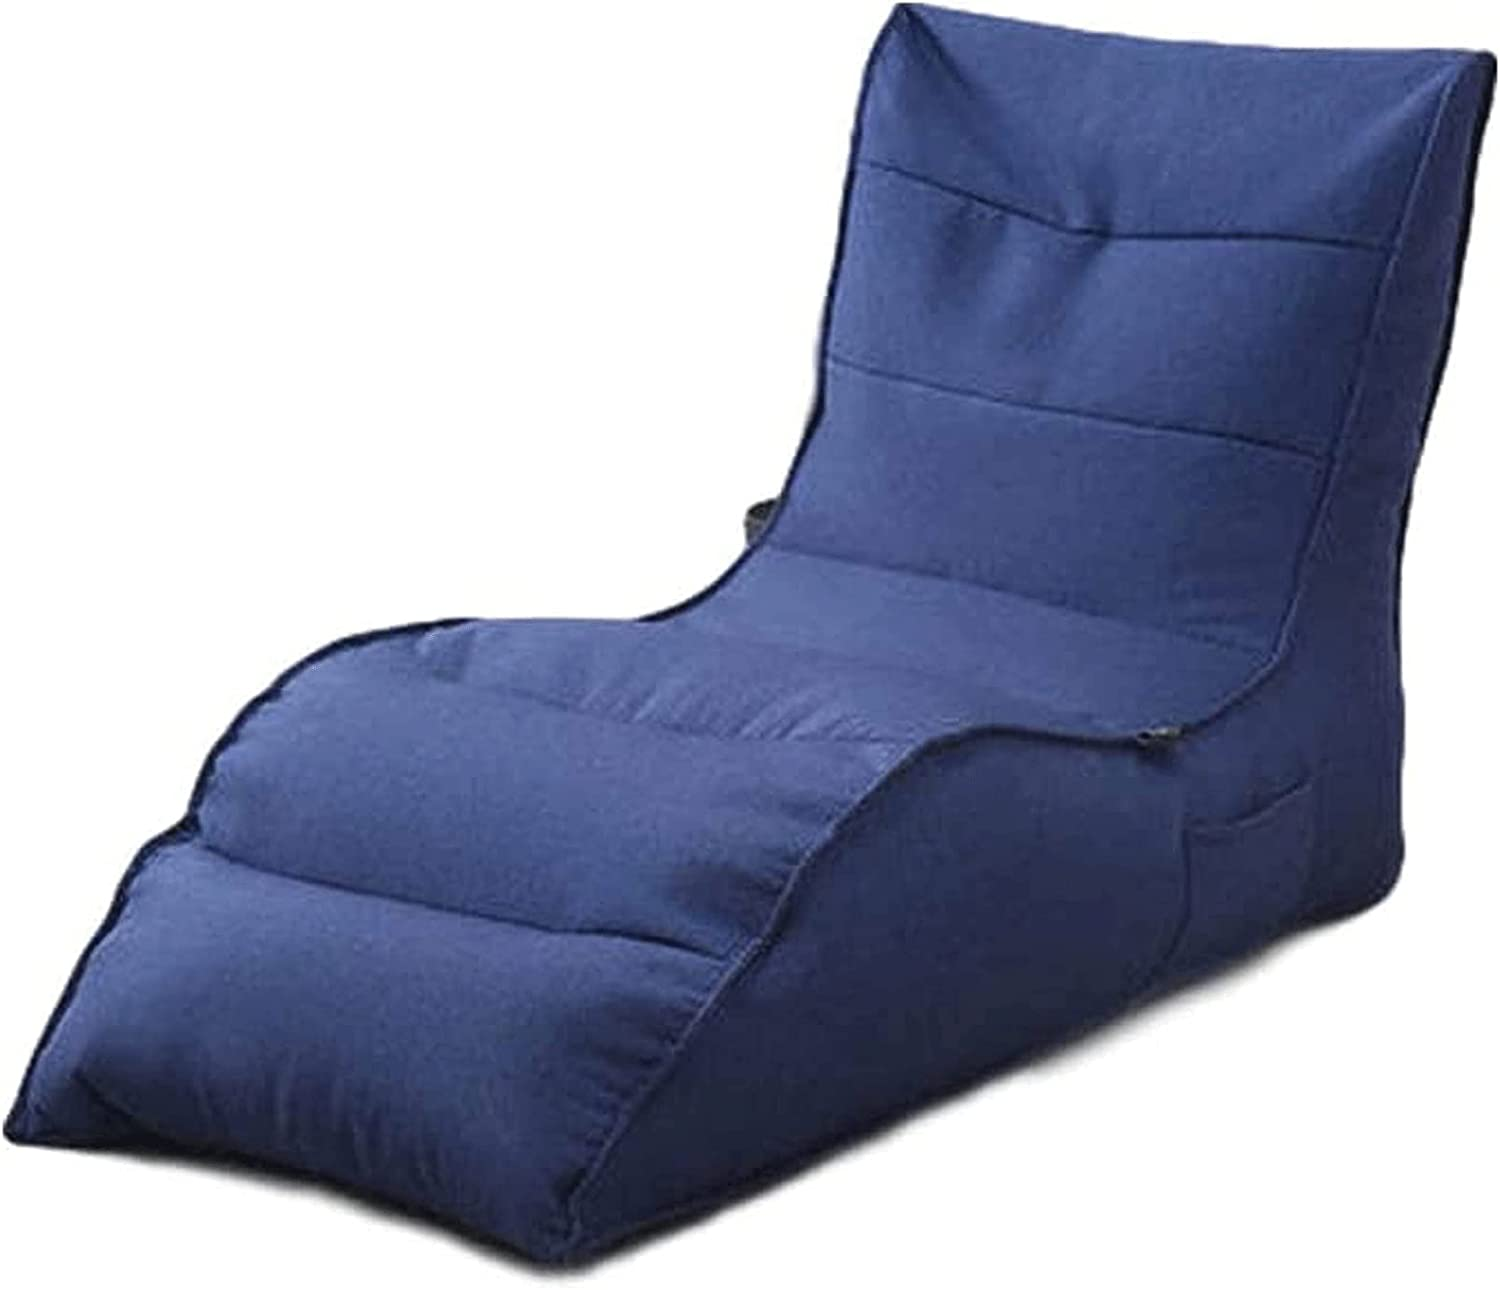 JNOI Structured Comfy Giant Foam Bag Washab sold out Chairs Limited time cheap sale Bean Machine